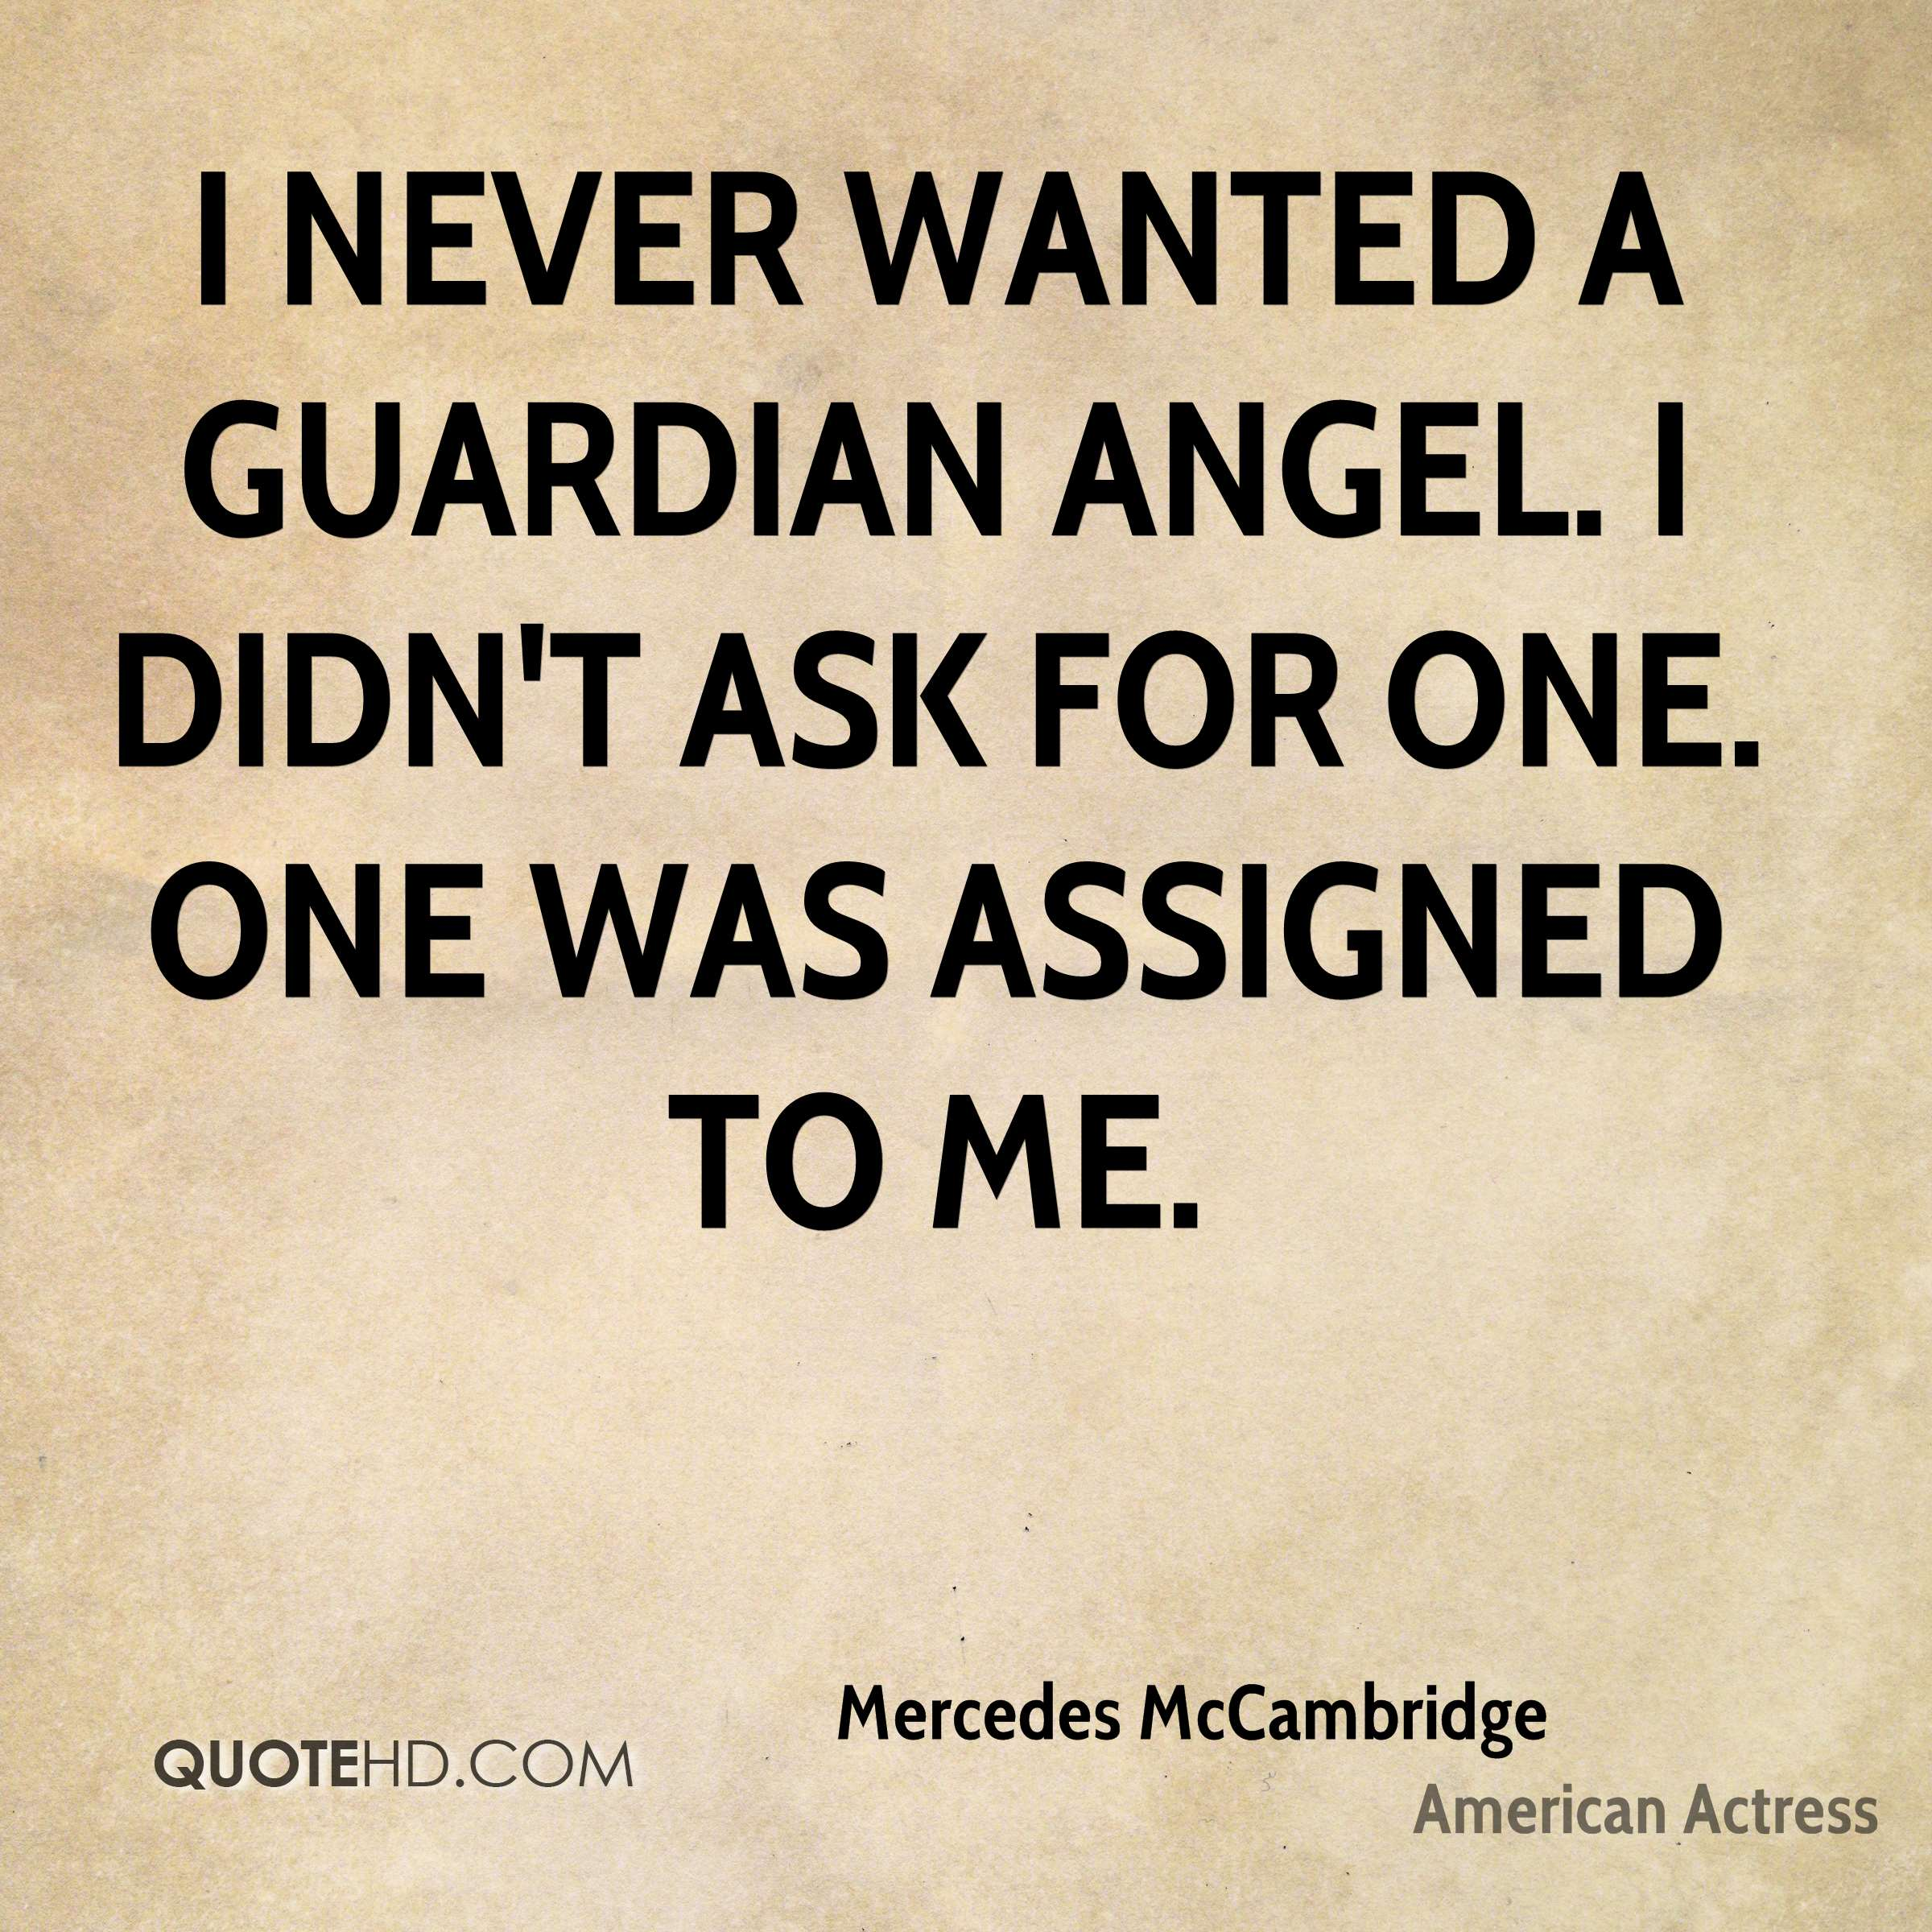 I never wanted a guardian angel i didnt ask for one one